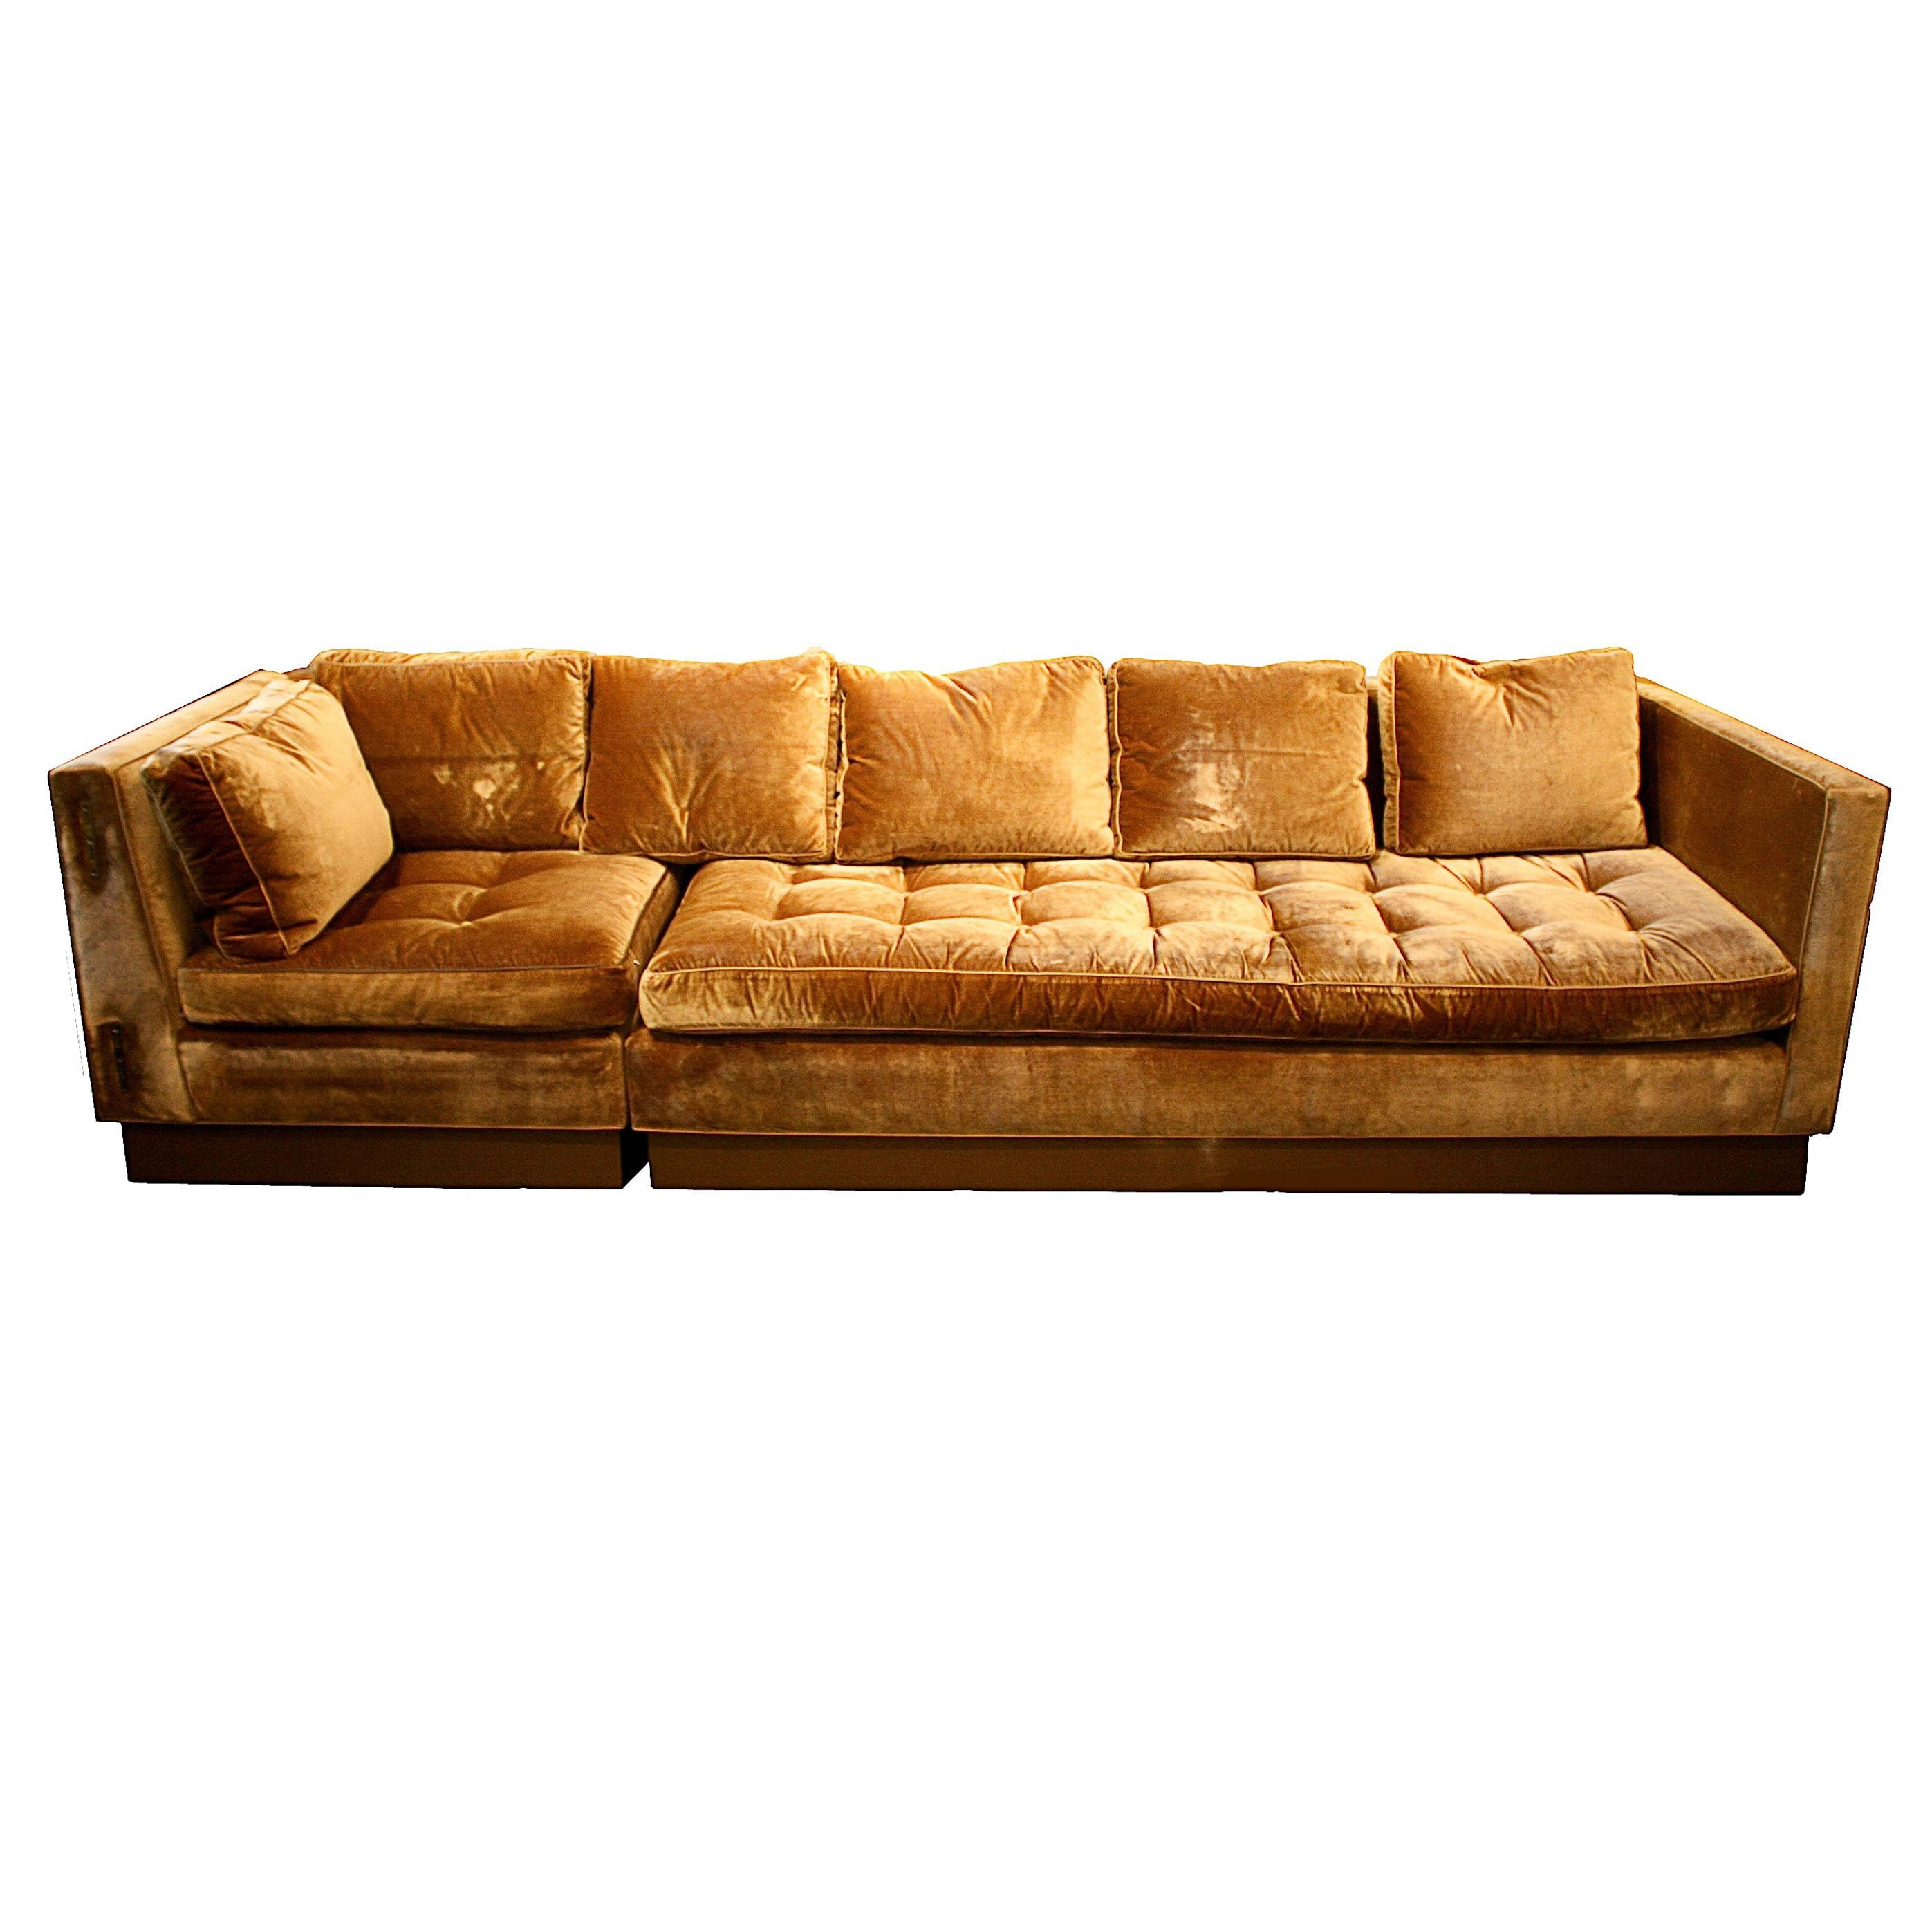 Furniture: Classic And Traditional Style Velvet Sectional Sofa For inside Gold Sectional Sofa (Image 9 of 25)